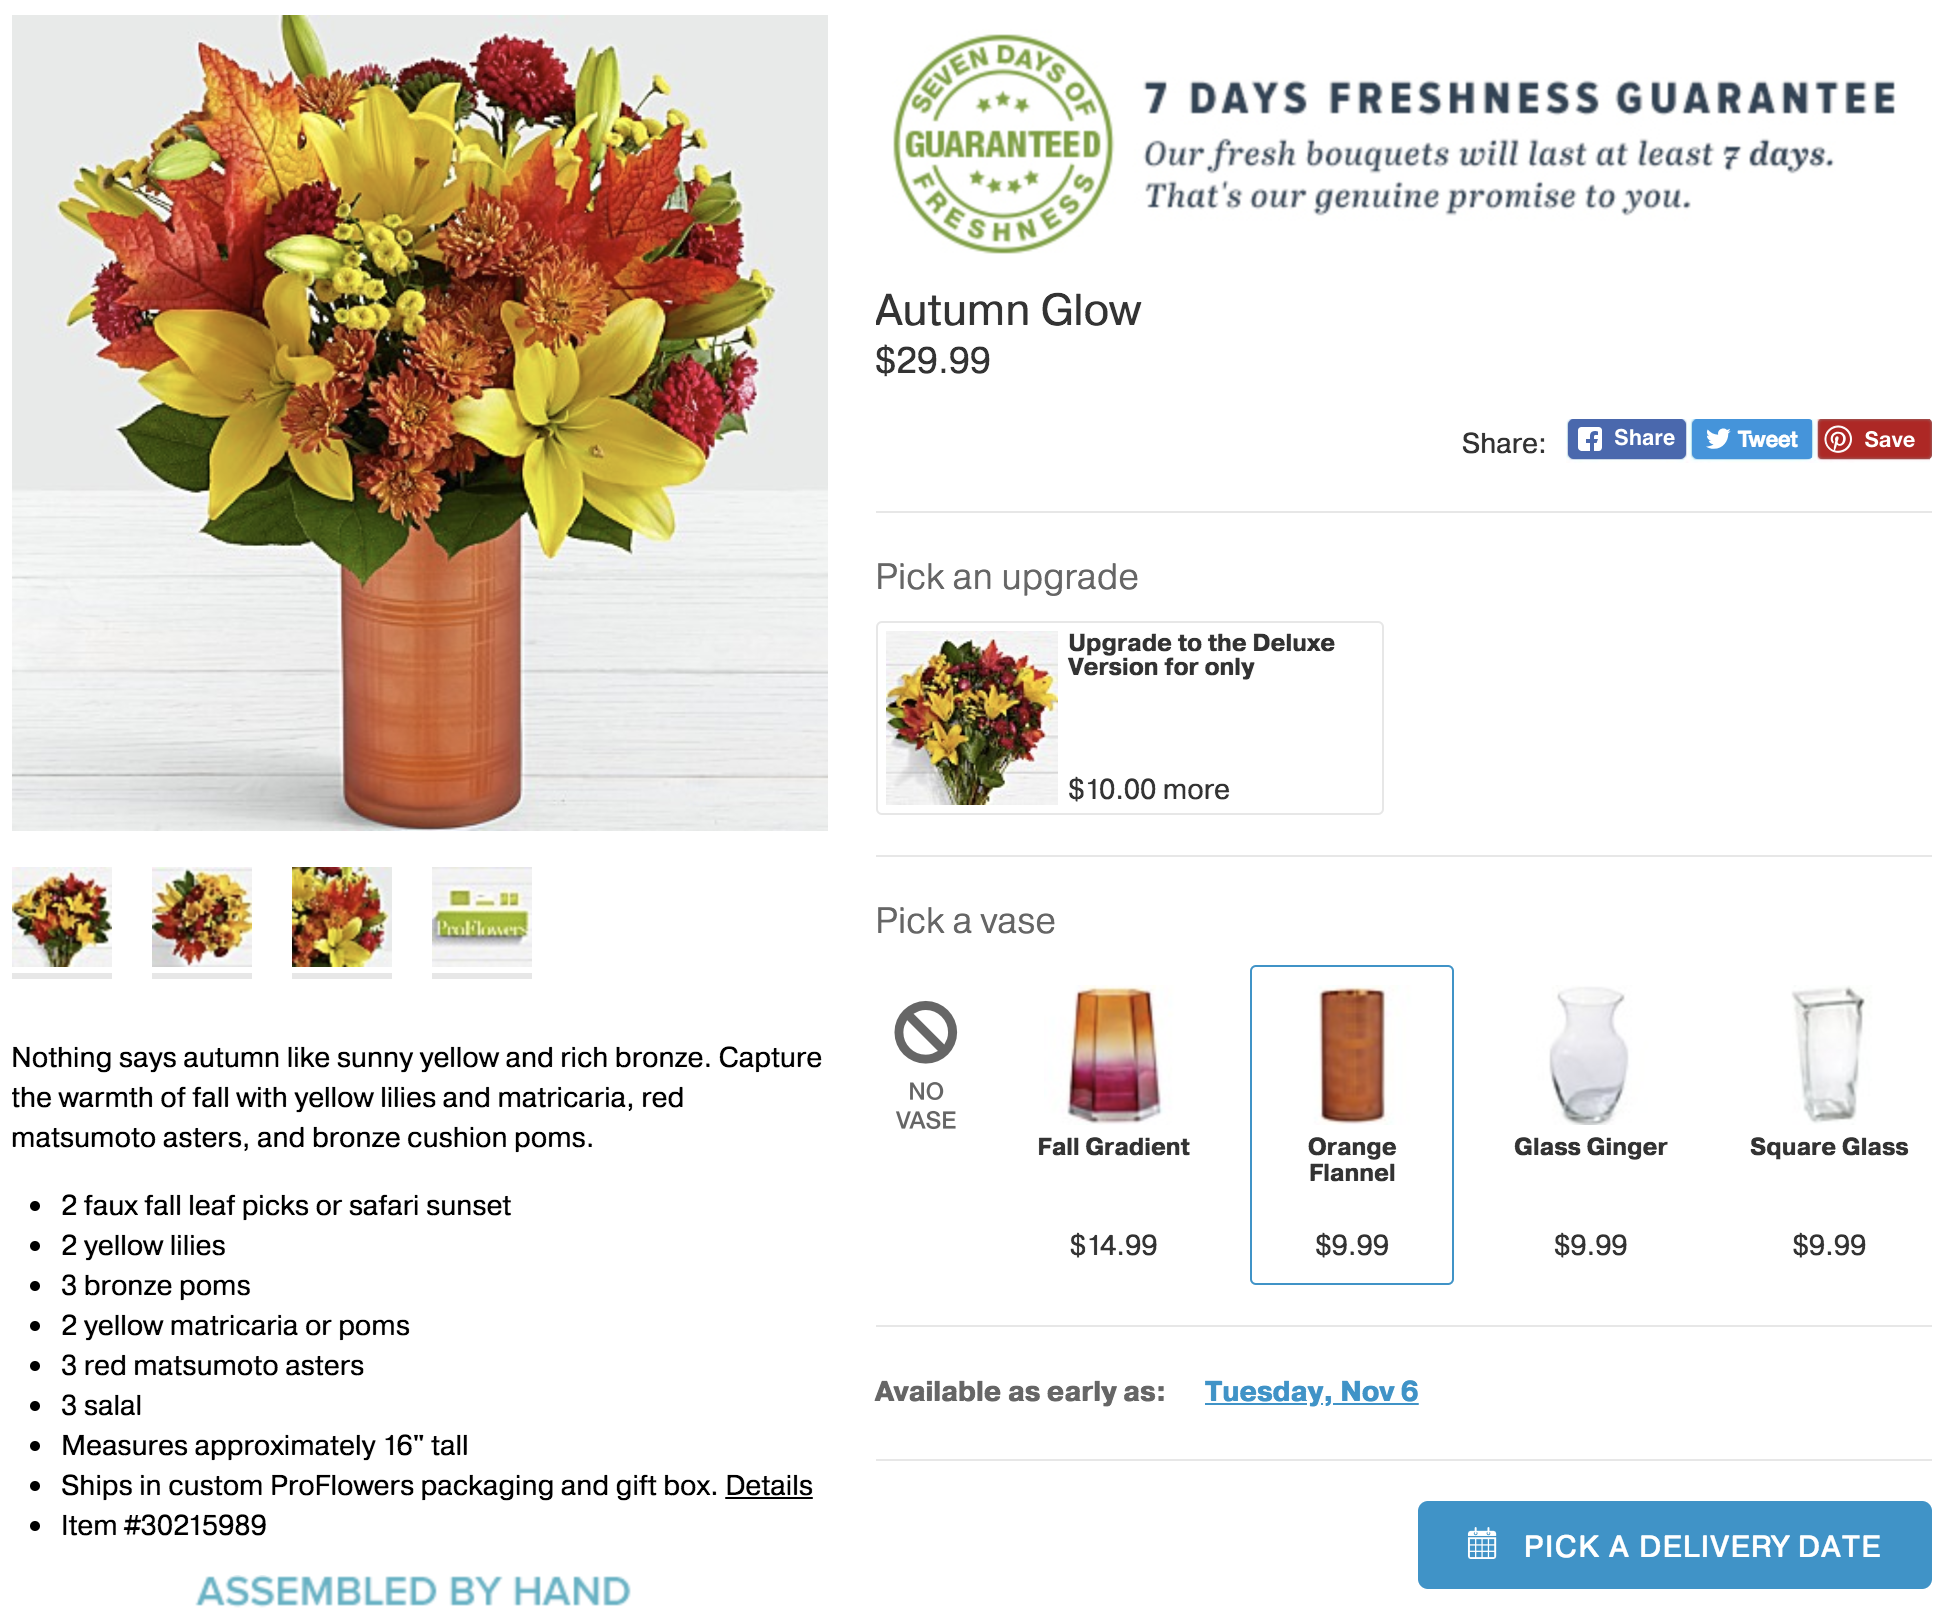 ProFlowers upsell and cross-sell